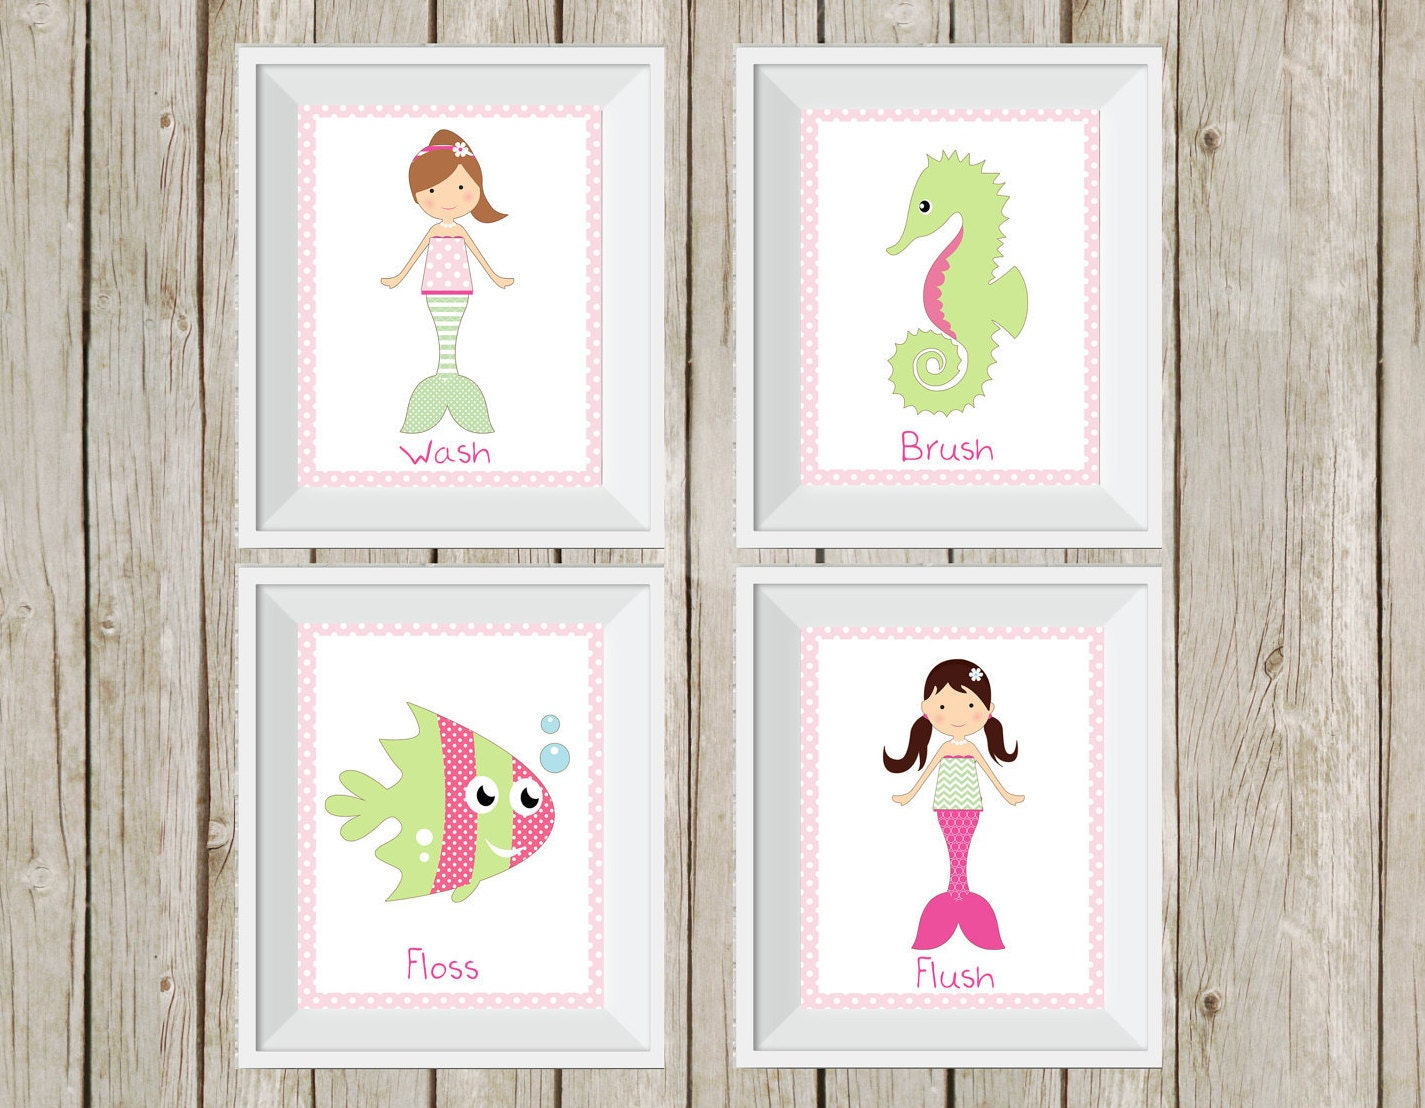 Bathroom wall art sea - Mermaid Bathroom Mermaid Decor Pink And Green Under The Sea Kid S Bathroom Decor Bathroom Wall Art Bathroom Rules Mermaid Prints